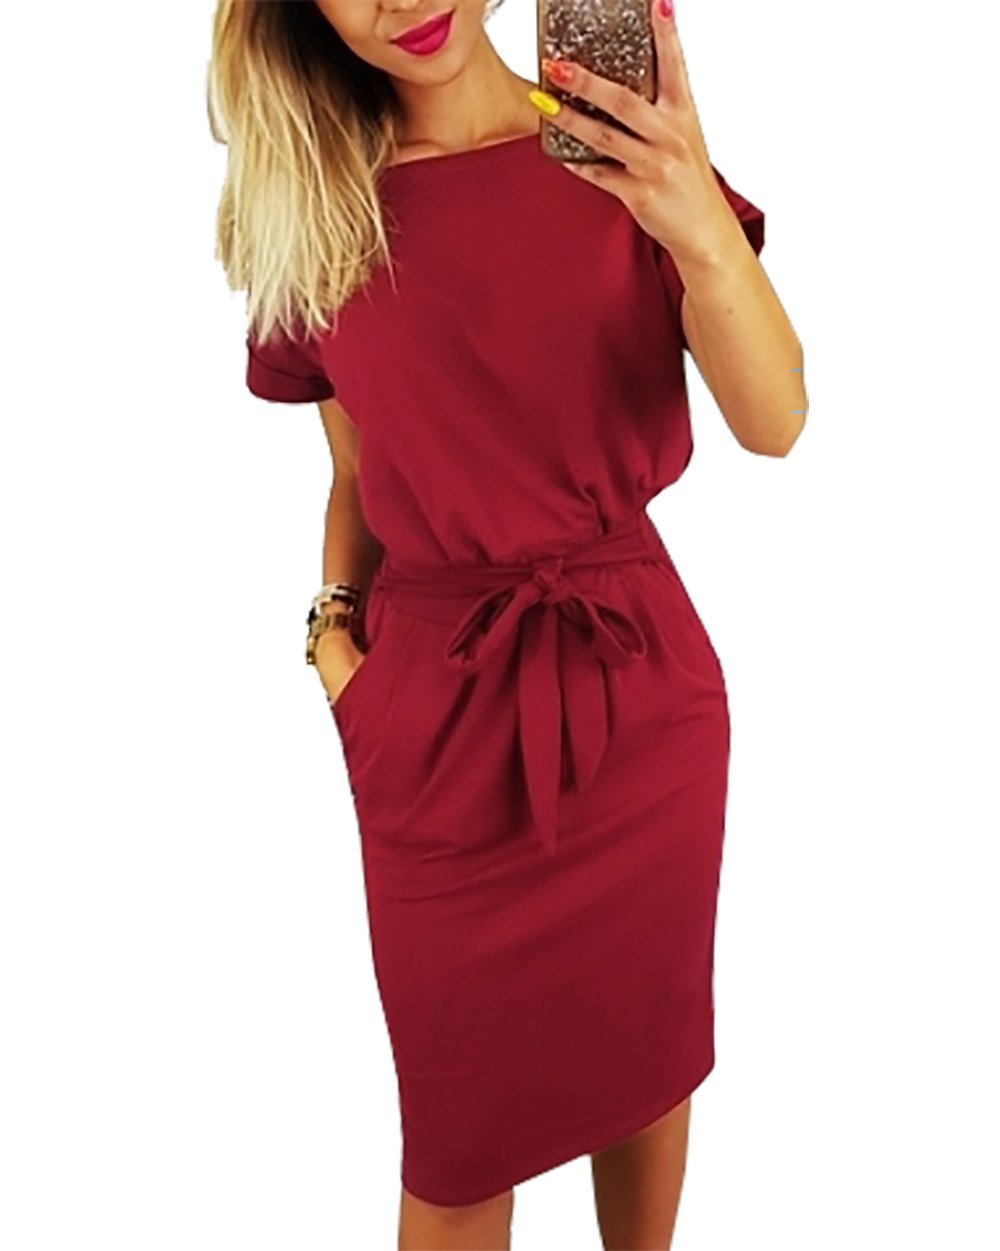 PRETTYGARDEN Women's 2018 Casual Short Sleeve Party Bodycon Sheath Belted Dress with Pockets (Wine Red, Small)